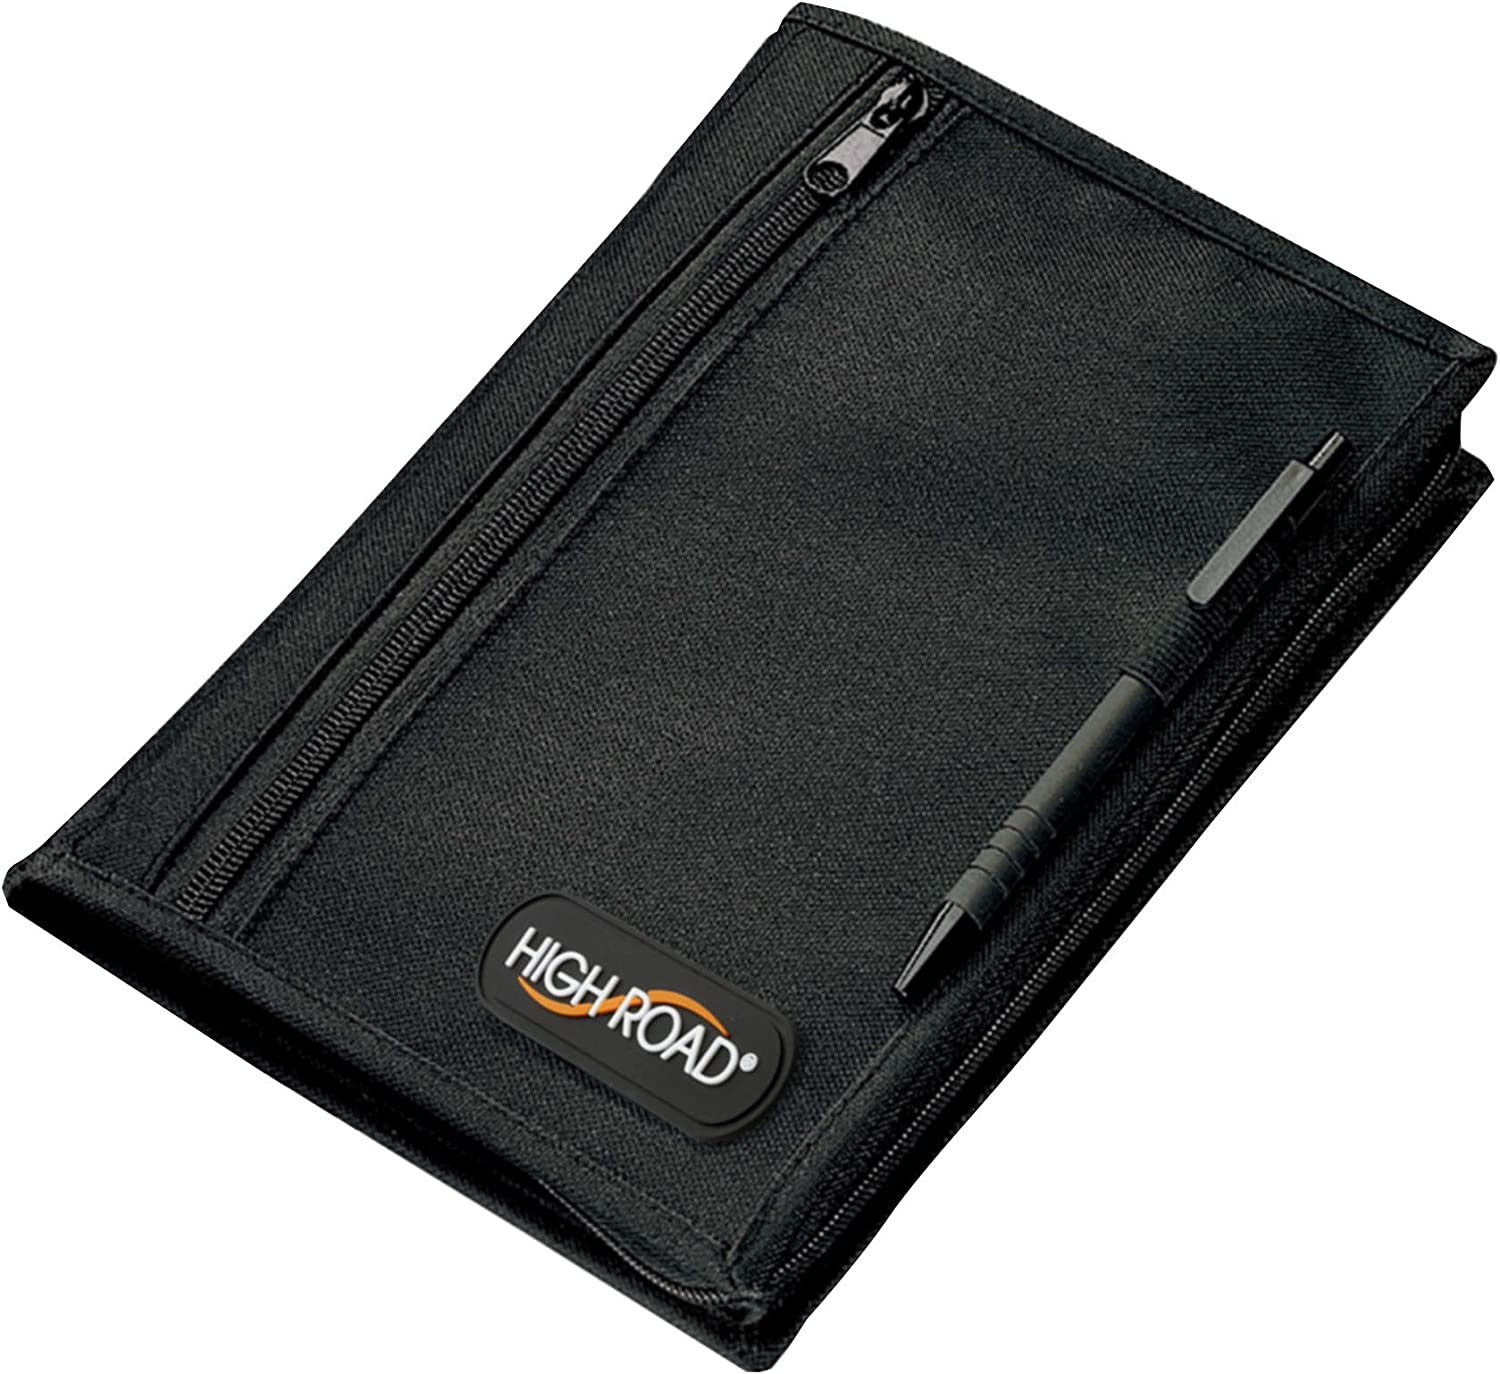 High Road Car Document Organizer